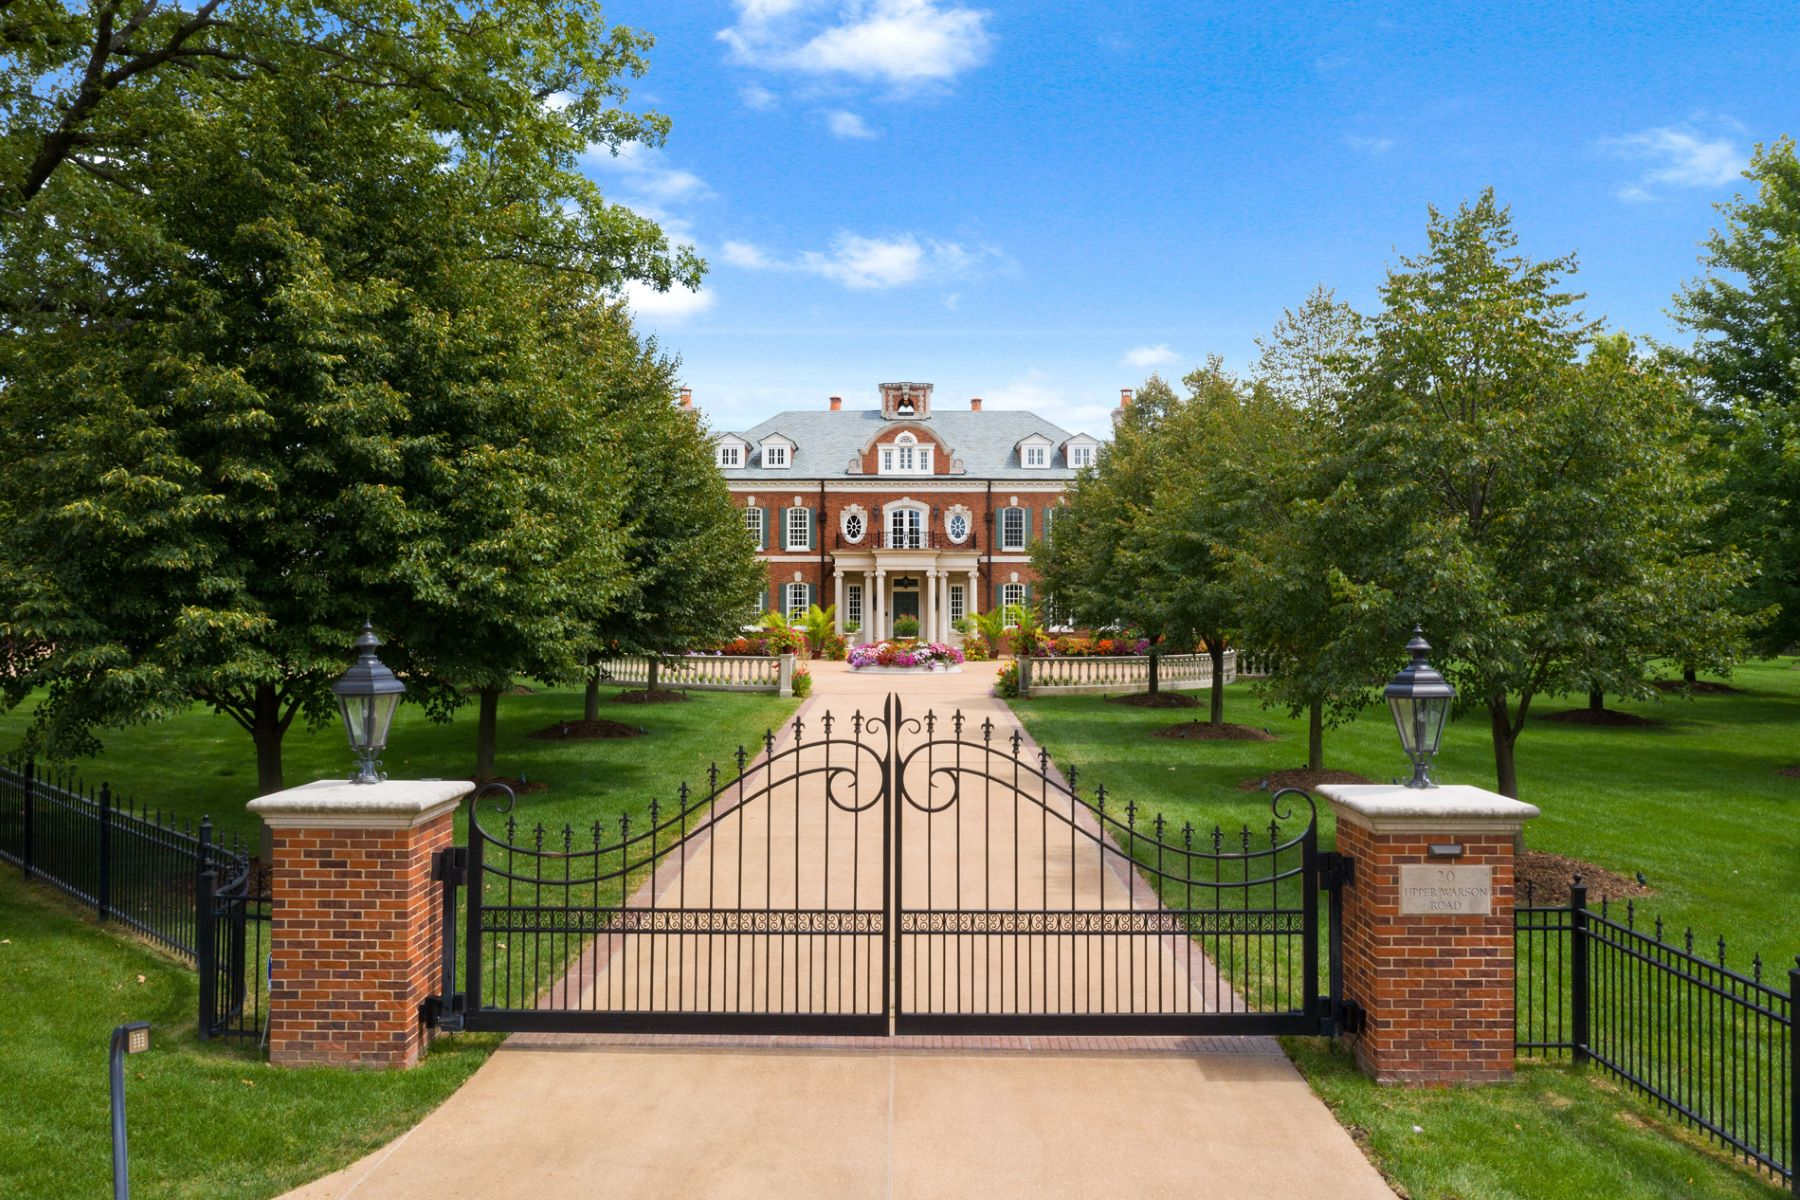 Single Family Homes for Sale at The Westbury Estate: A Legacy Property in the Heart of Ladue 20 Upper Warson Road, Ladue, Missouri 63124 United States